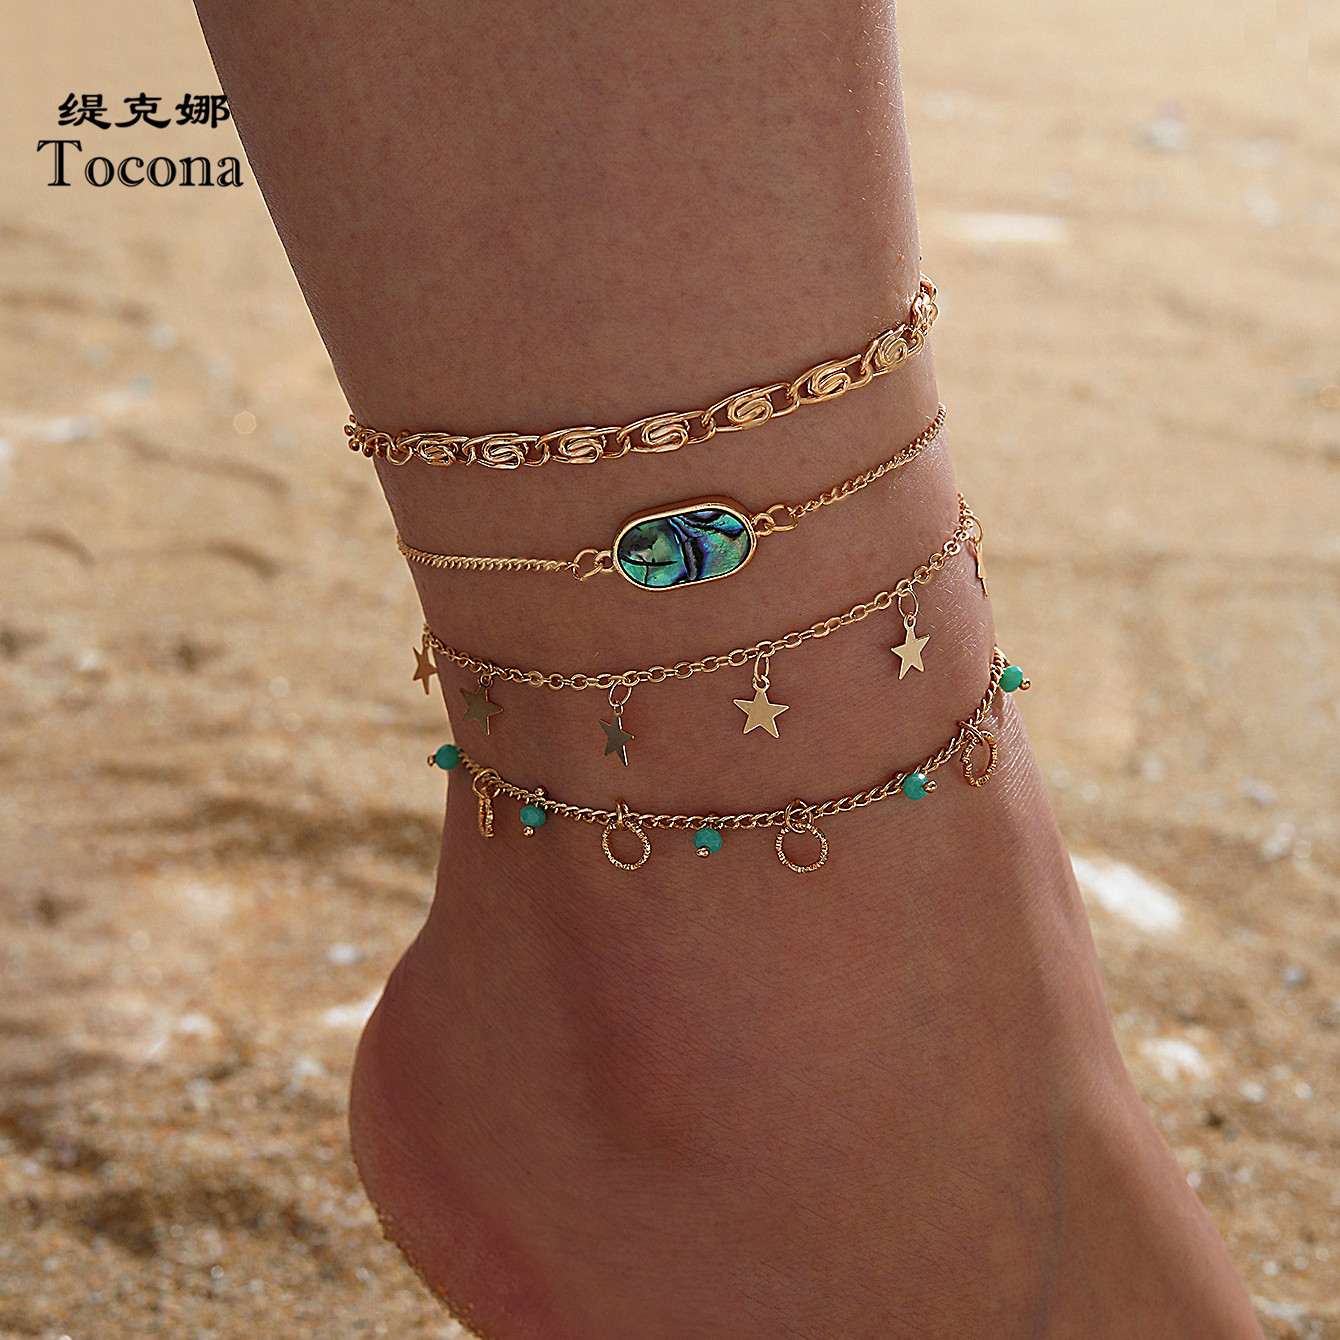 Tocona 4pcs/sets Charm Star Tassel Anklets for Women Color Rhinestone Hollow Geometric Bead Foot Chain Jewelry Gift 14035